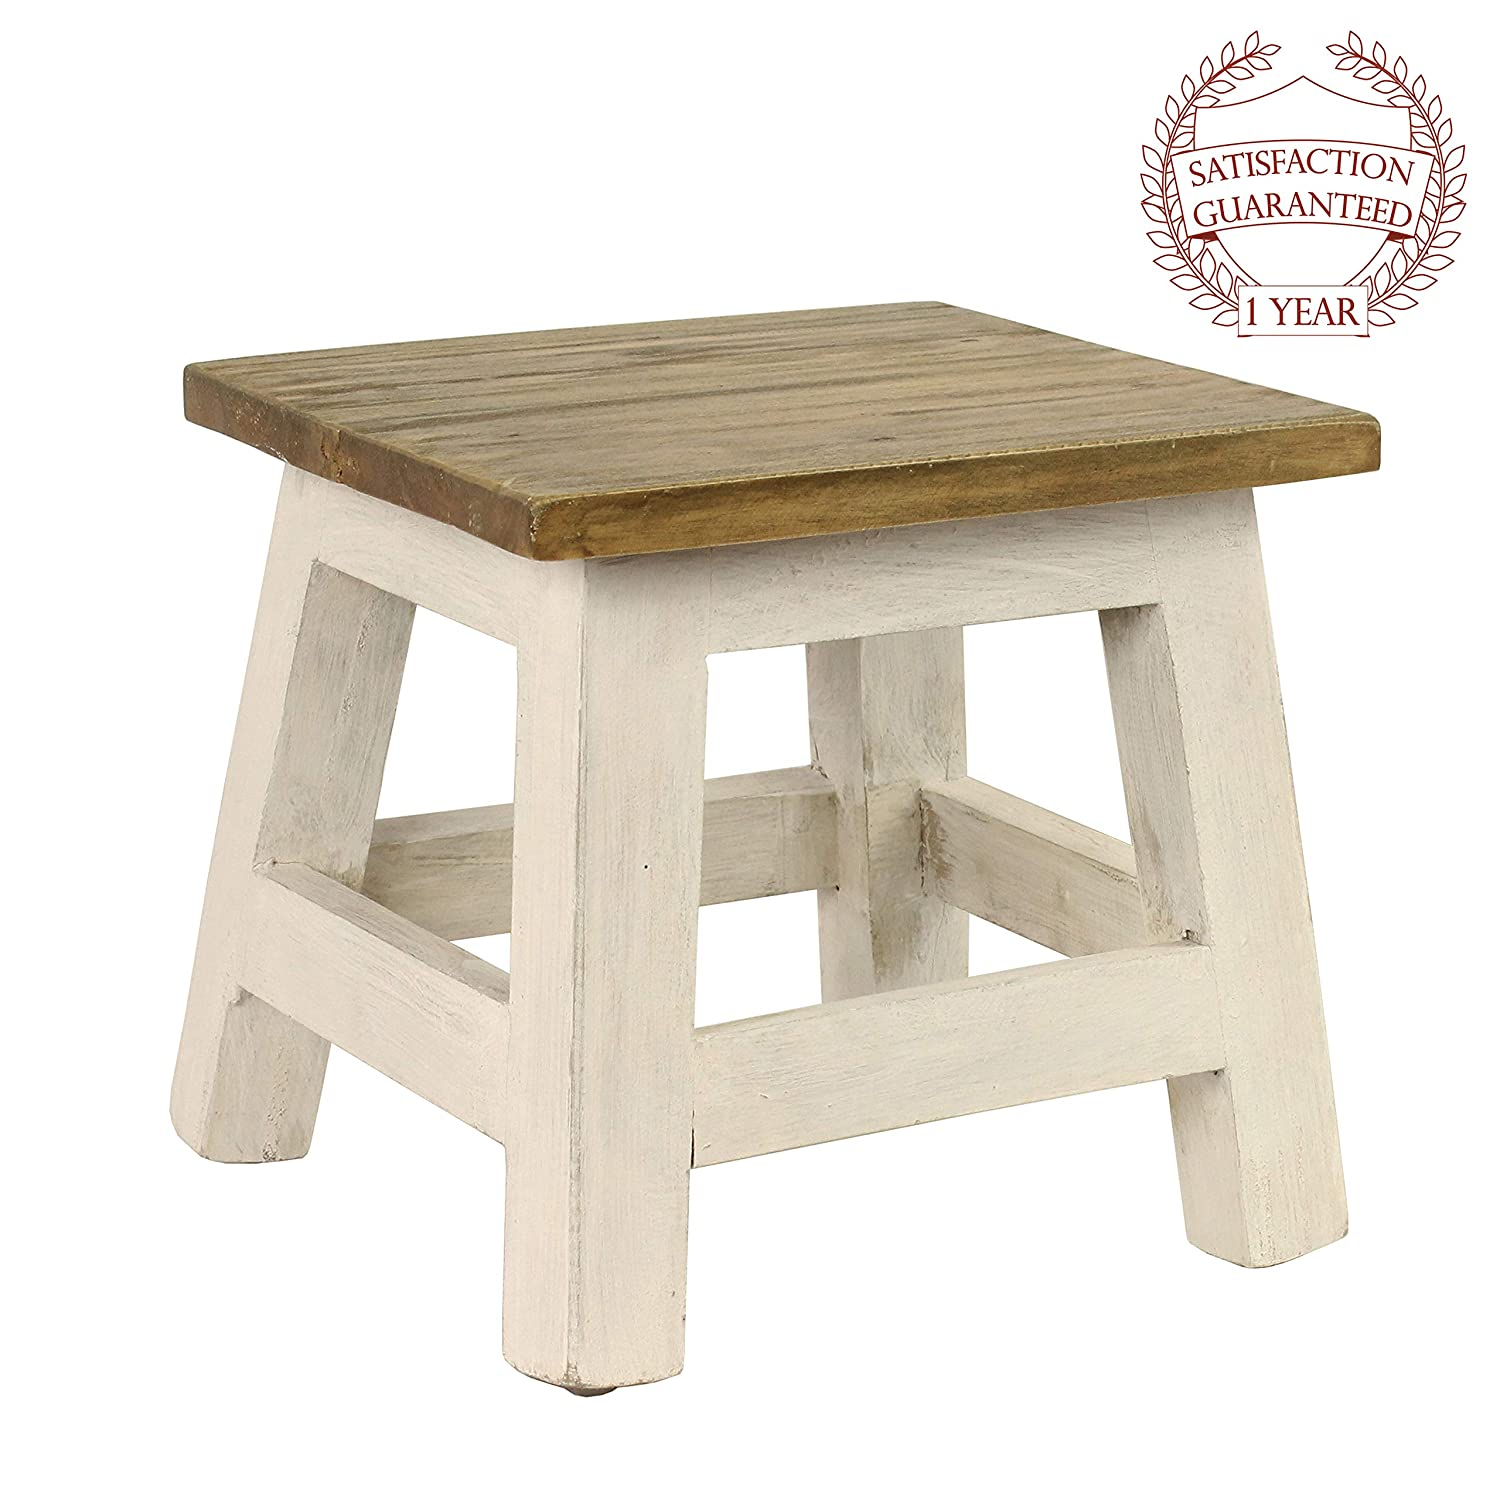 Pleasant Antique Revival Goya Wood Step Stool Accent Made Of Mahogany In Chic Lightly Distressed Finish Square Seat For Home Use One Size White Bralicious Painted Fabric Chair Ideas Braliciousco